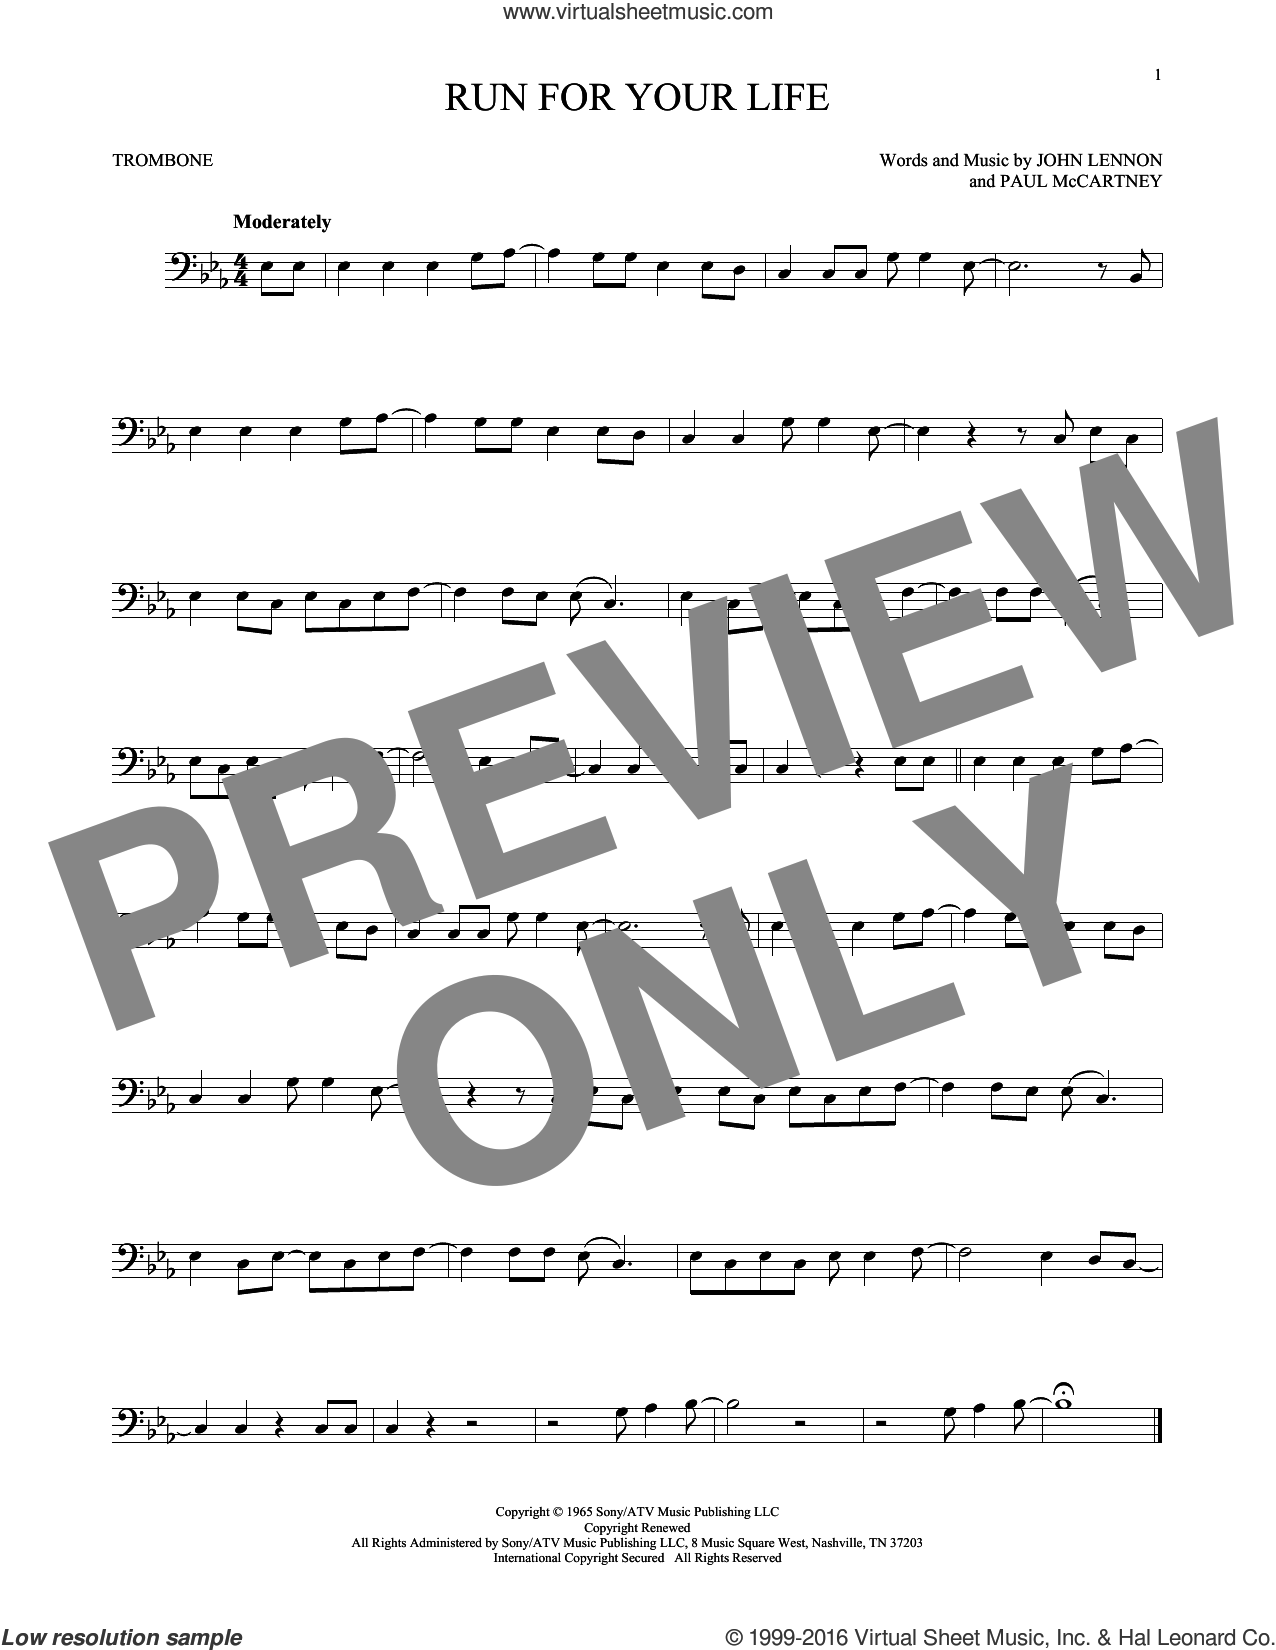 Run For Your Life sheet music for trombone solo by Paul McCartney